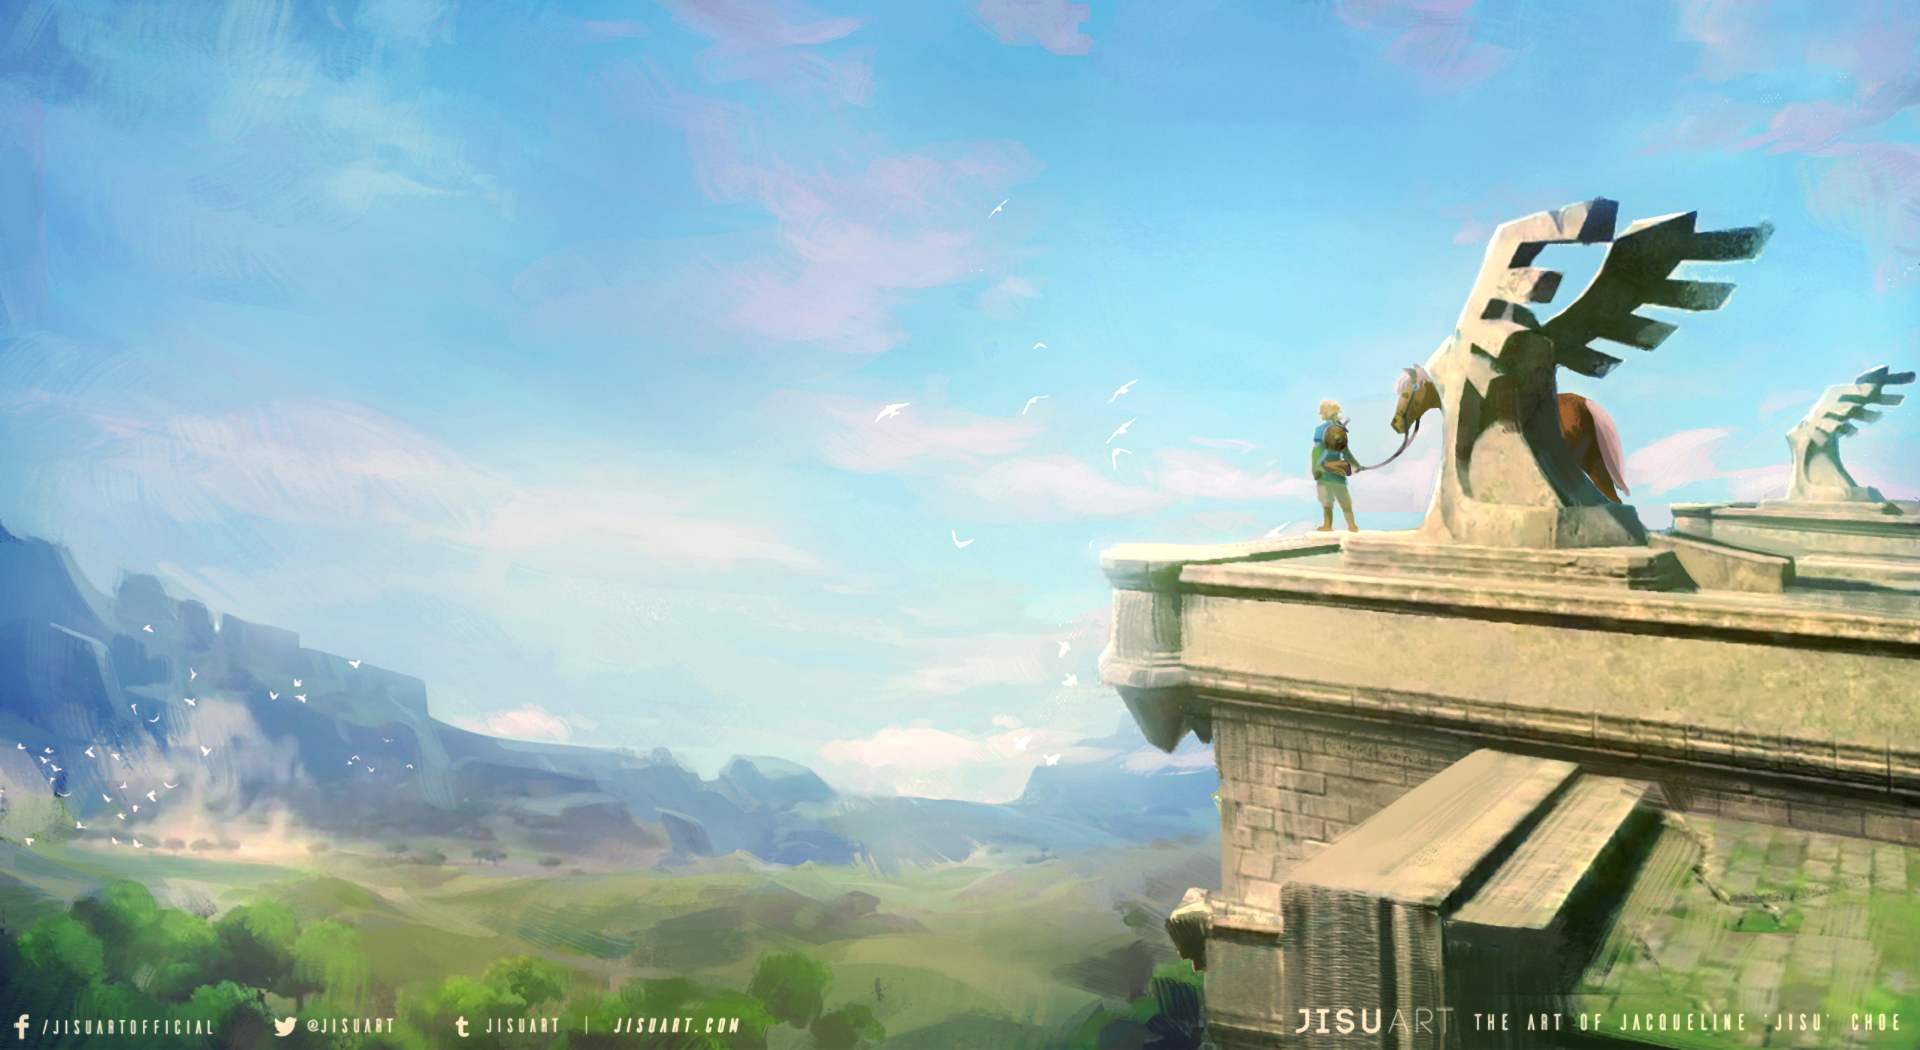 Breath Of The Wild Wallpaper: The Legend Of Zelda: Breath Of The Wild Wallpaper And